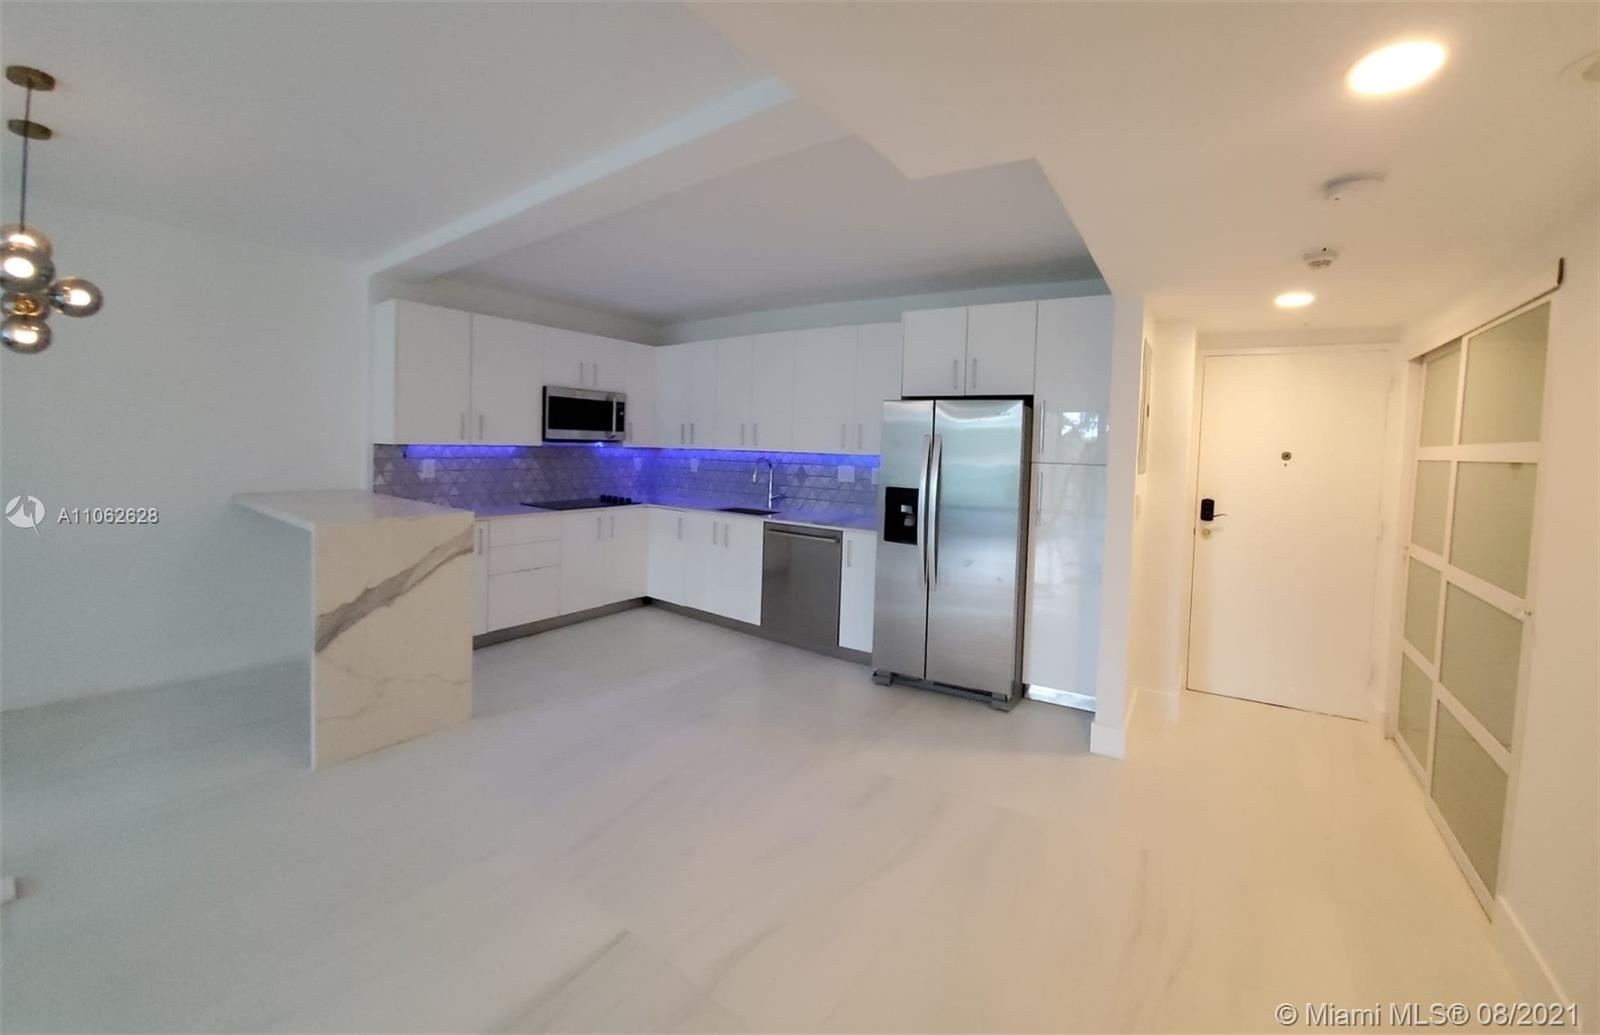 19380 Collins Ave #224, Sunny Isles, FL 33160 - #: A11062628